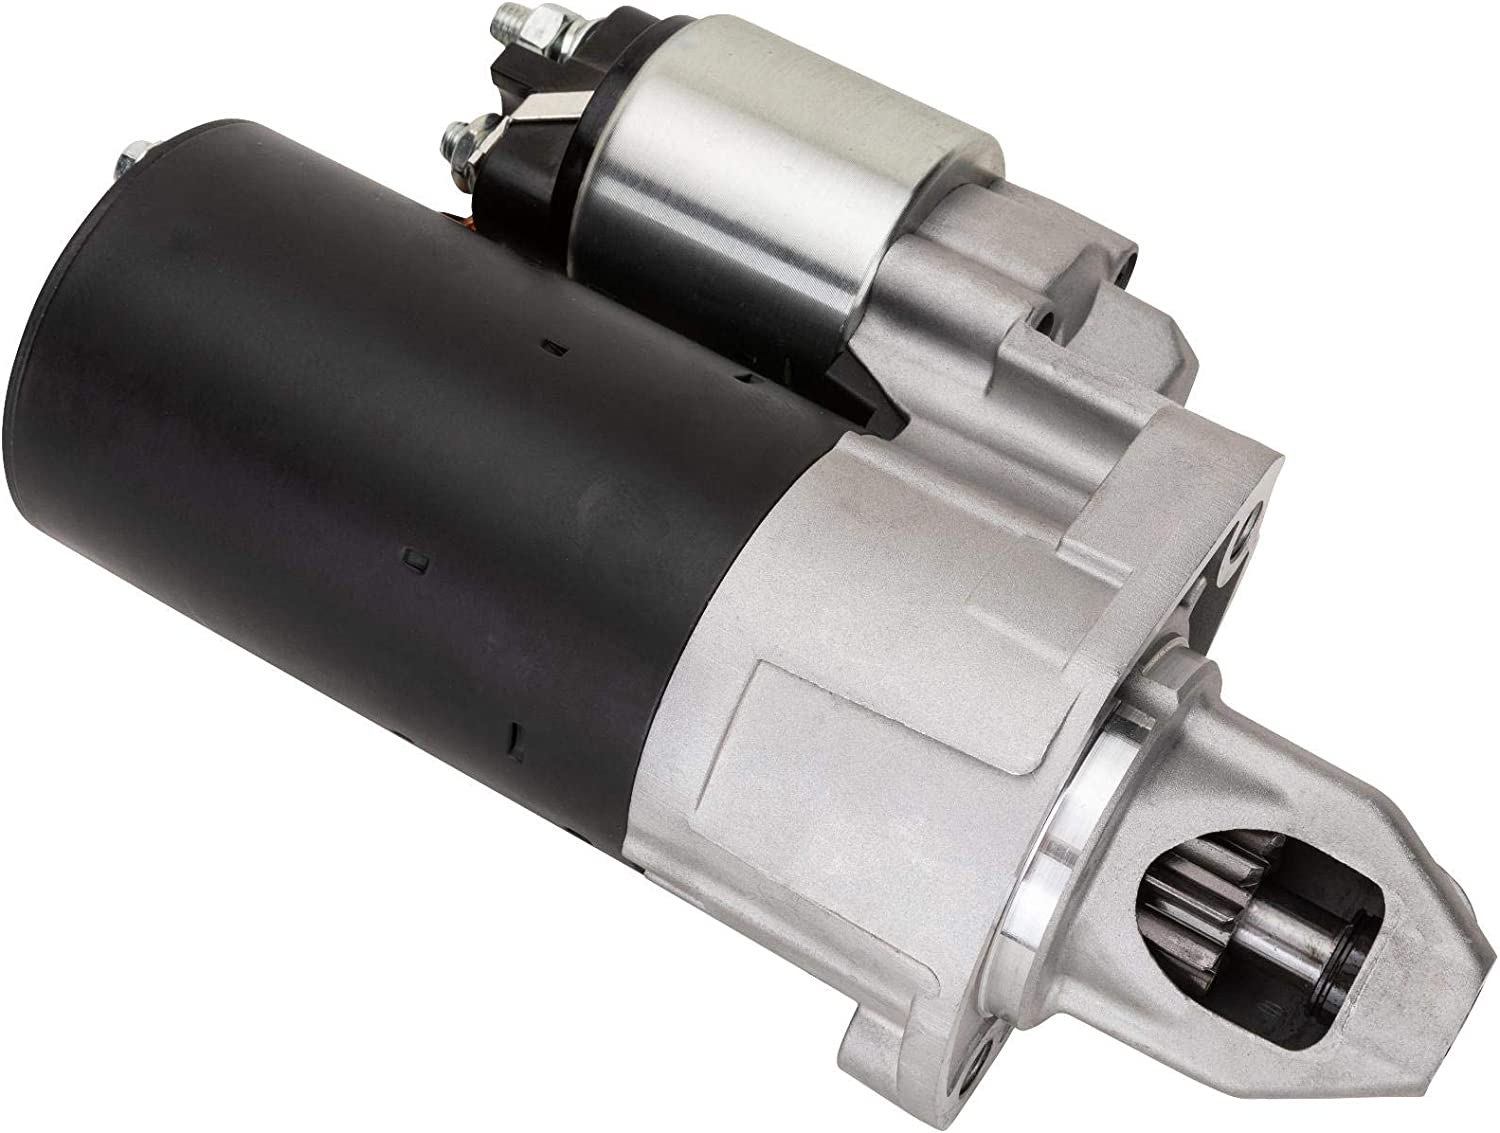 OLINDA New Shipping 2021 autumn and winter new Free Starter Motor compatible with Crossfire Merce 00-05 04-08